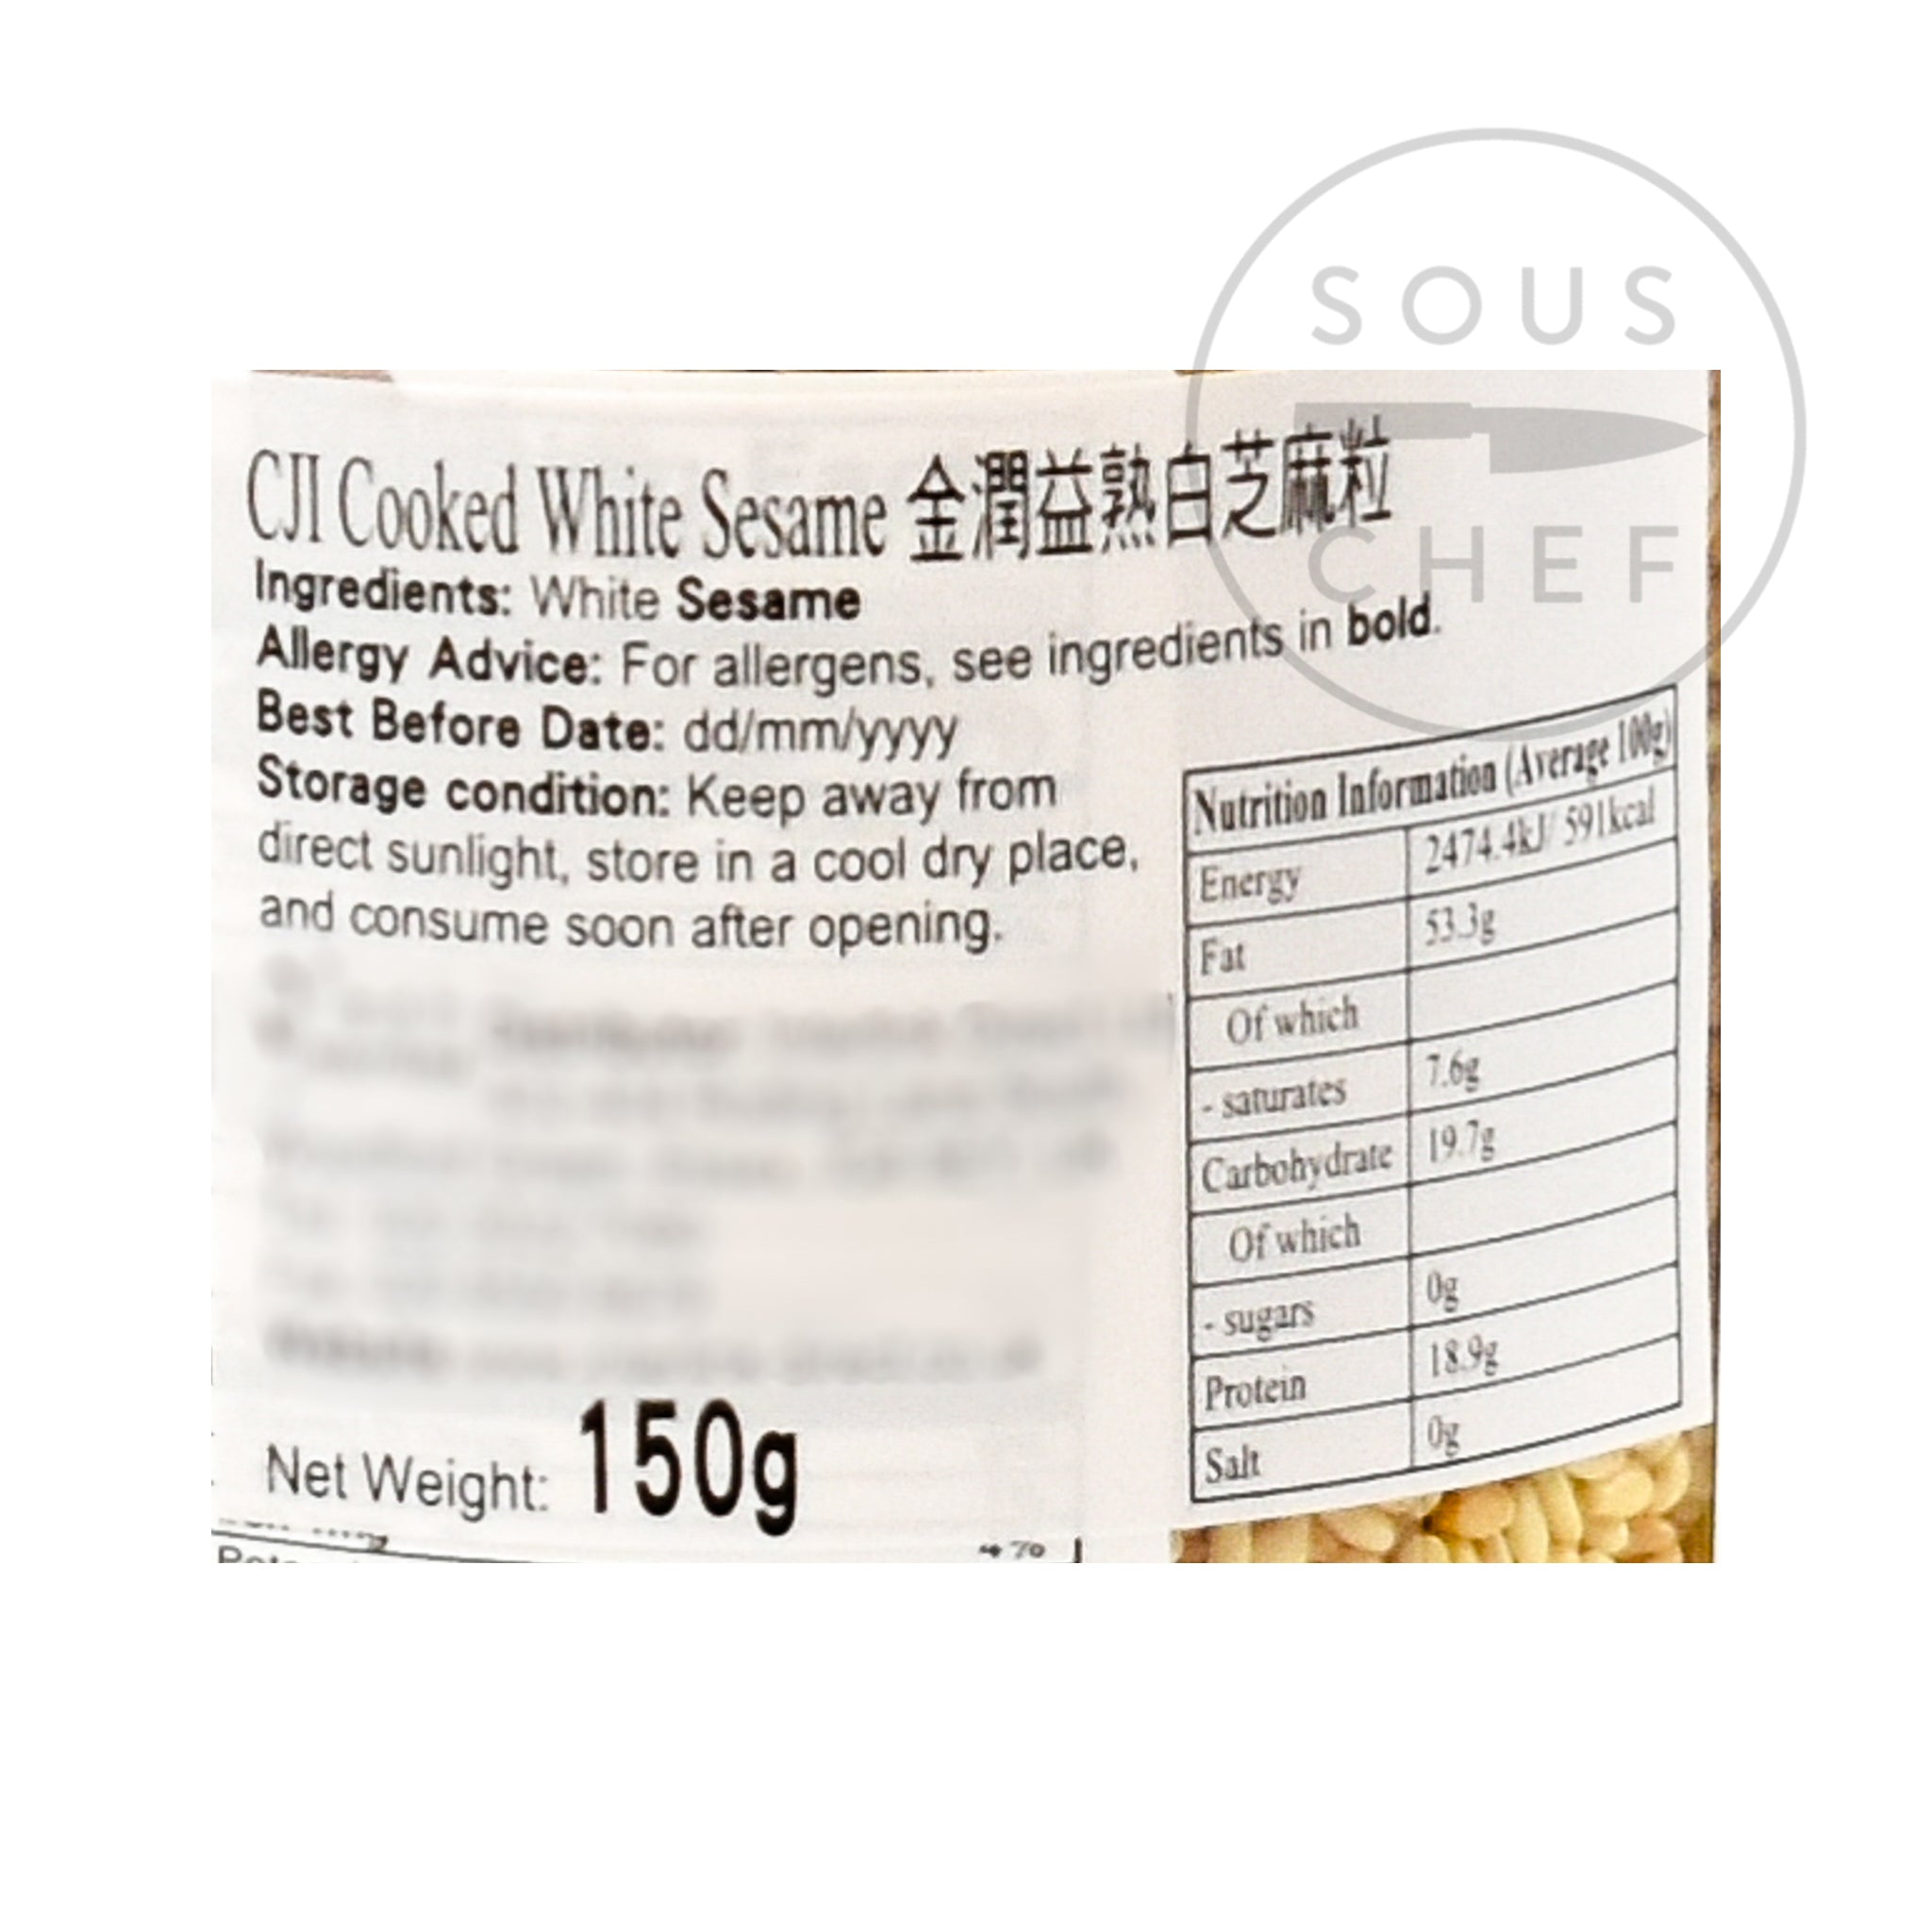 Toasted White Sesame Seeds 150g nutritional information ingredients